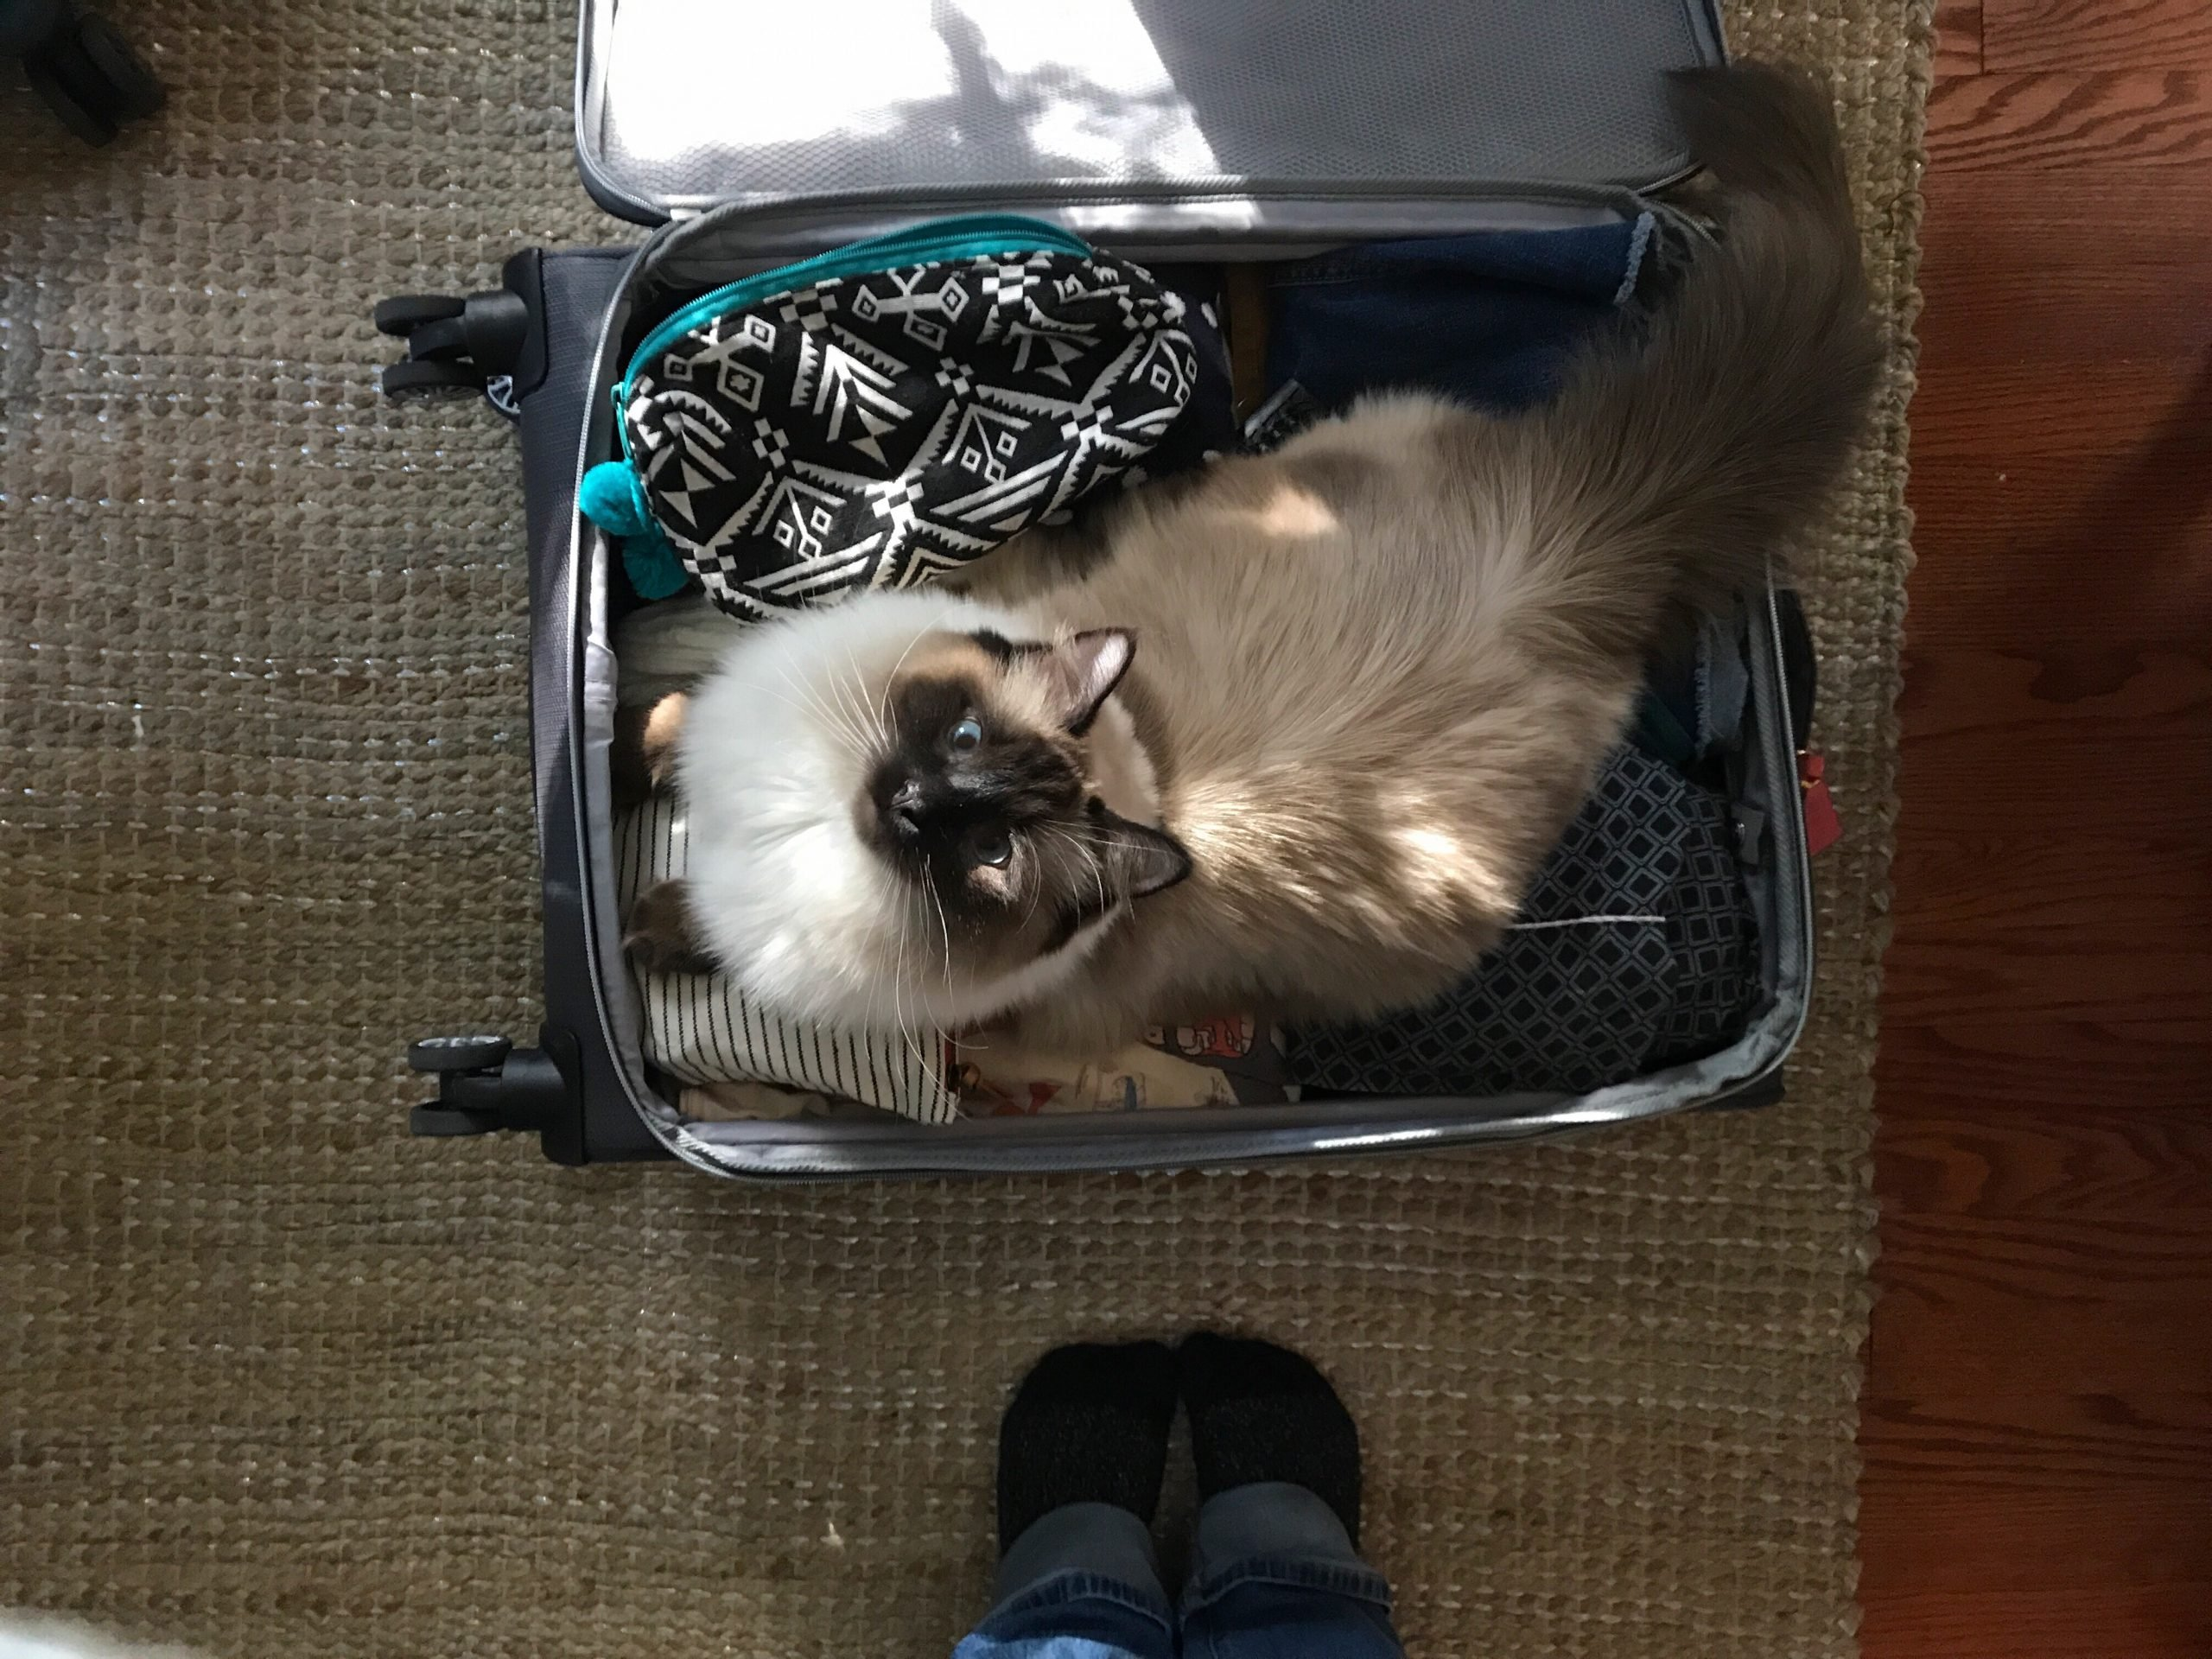 Packing for Travel. Cat in a Suitcase.